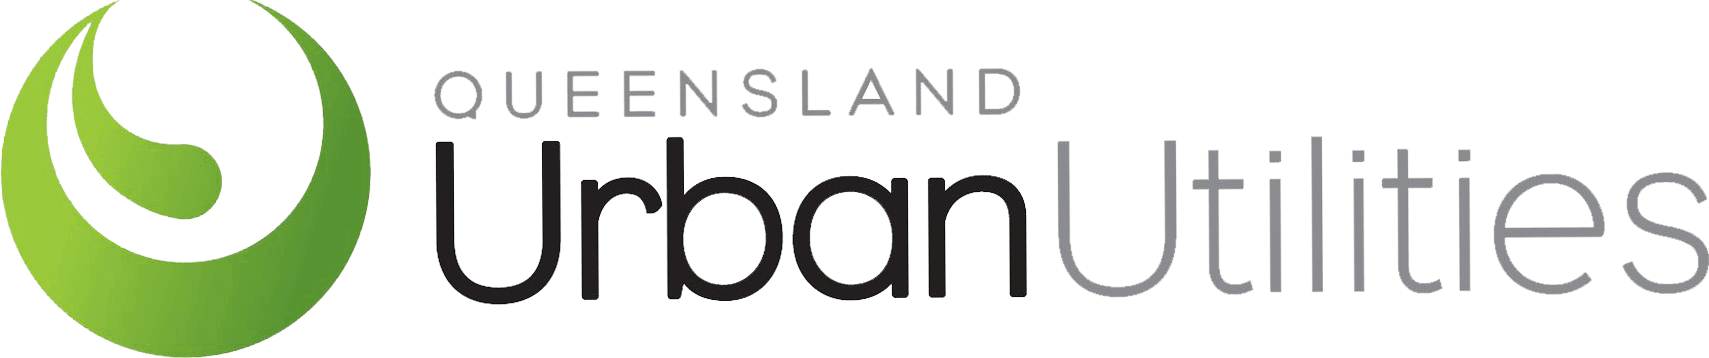 Signavio Queensland Urban Utilities Customer Logo